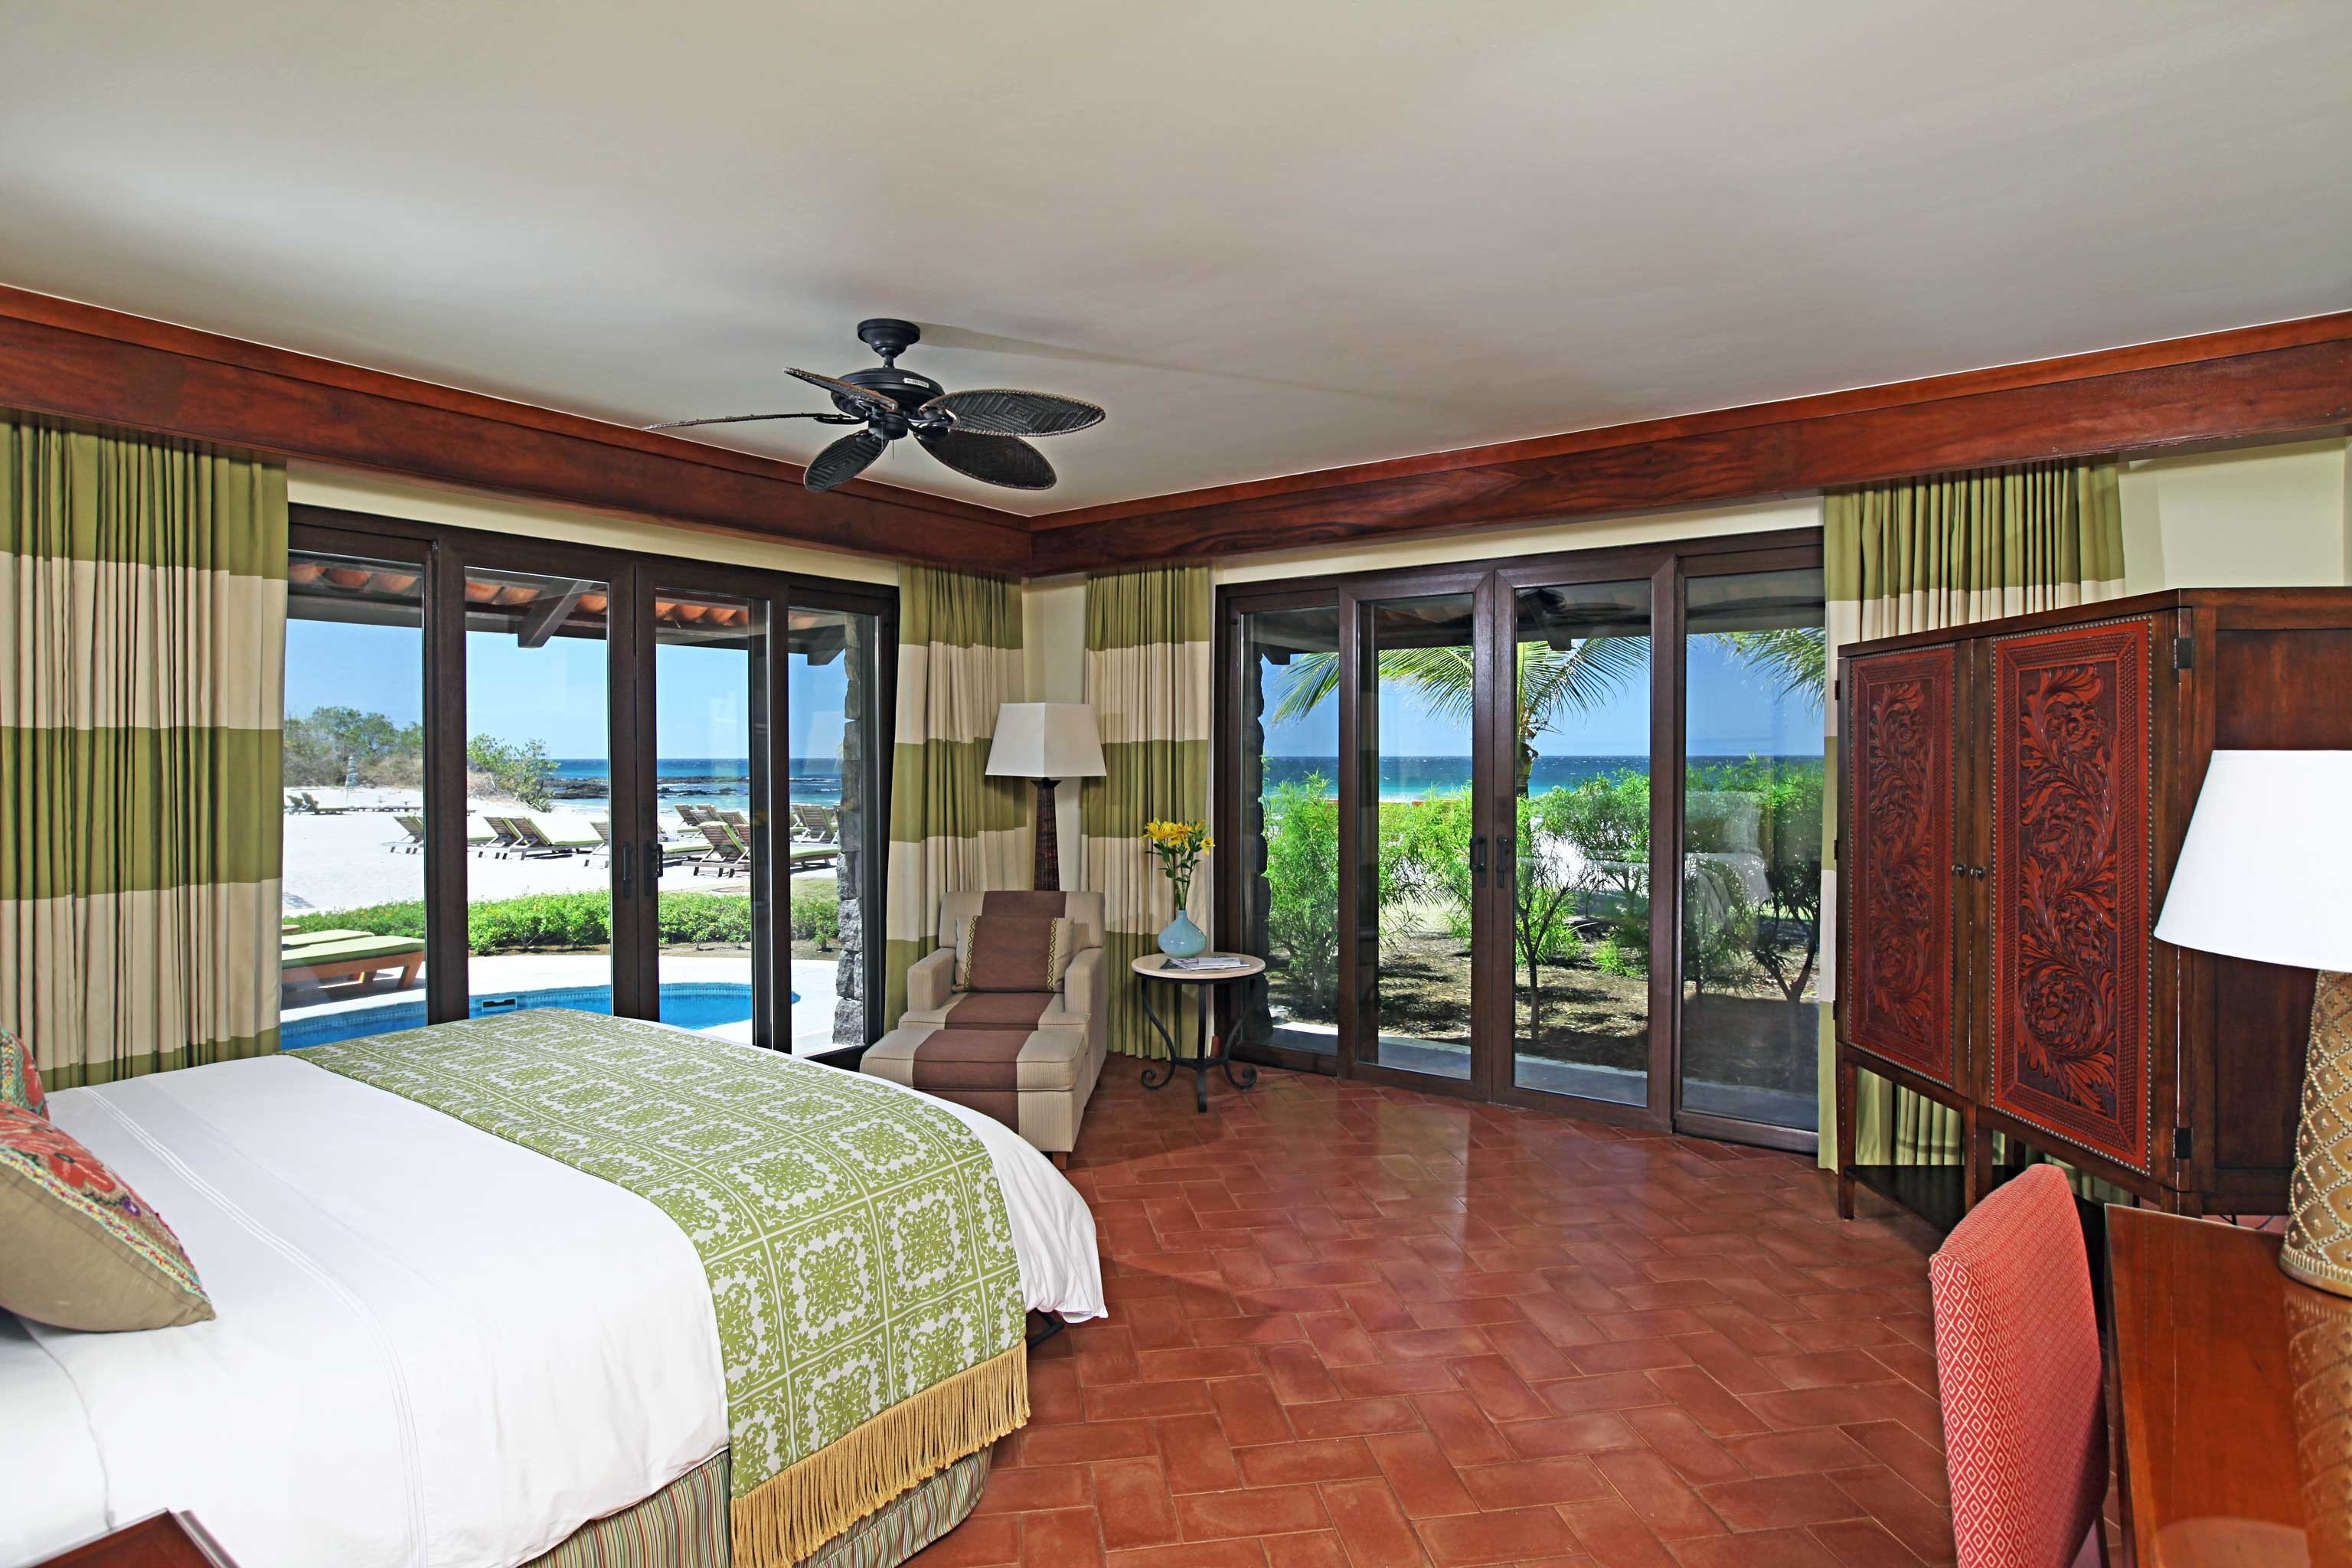 Balcony Beachfront Bedroom Lounge Luxury Scenic views Terrace Tropical property Resort house home cottage Villa Suite